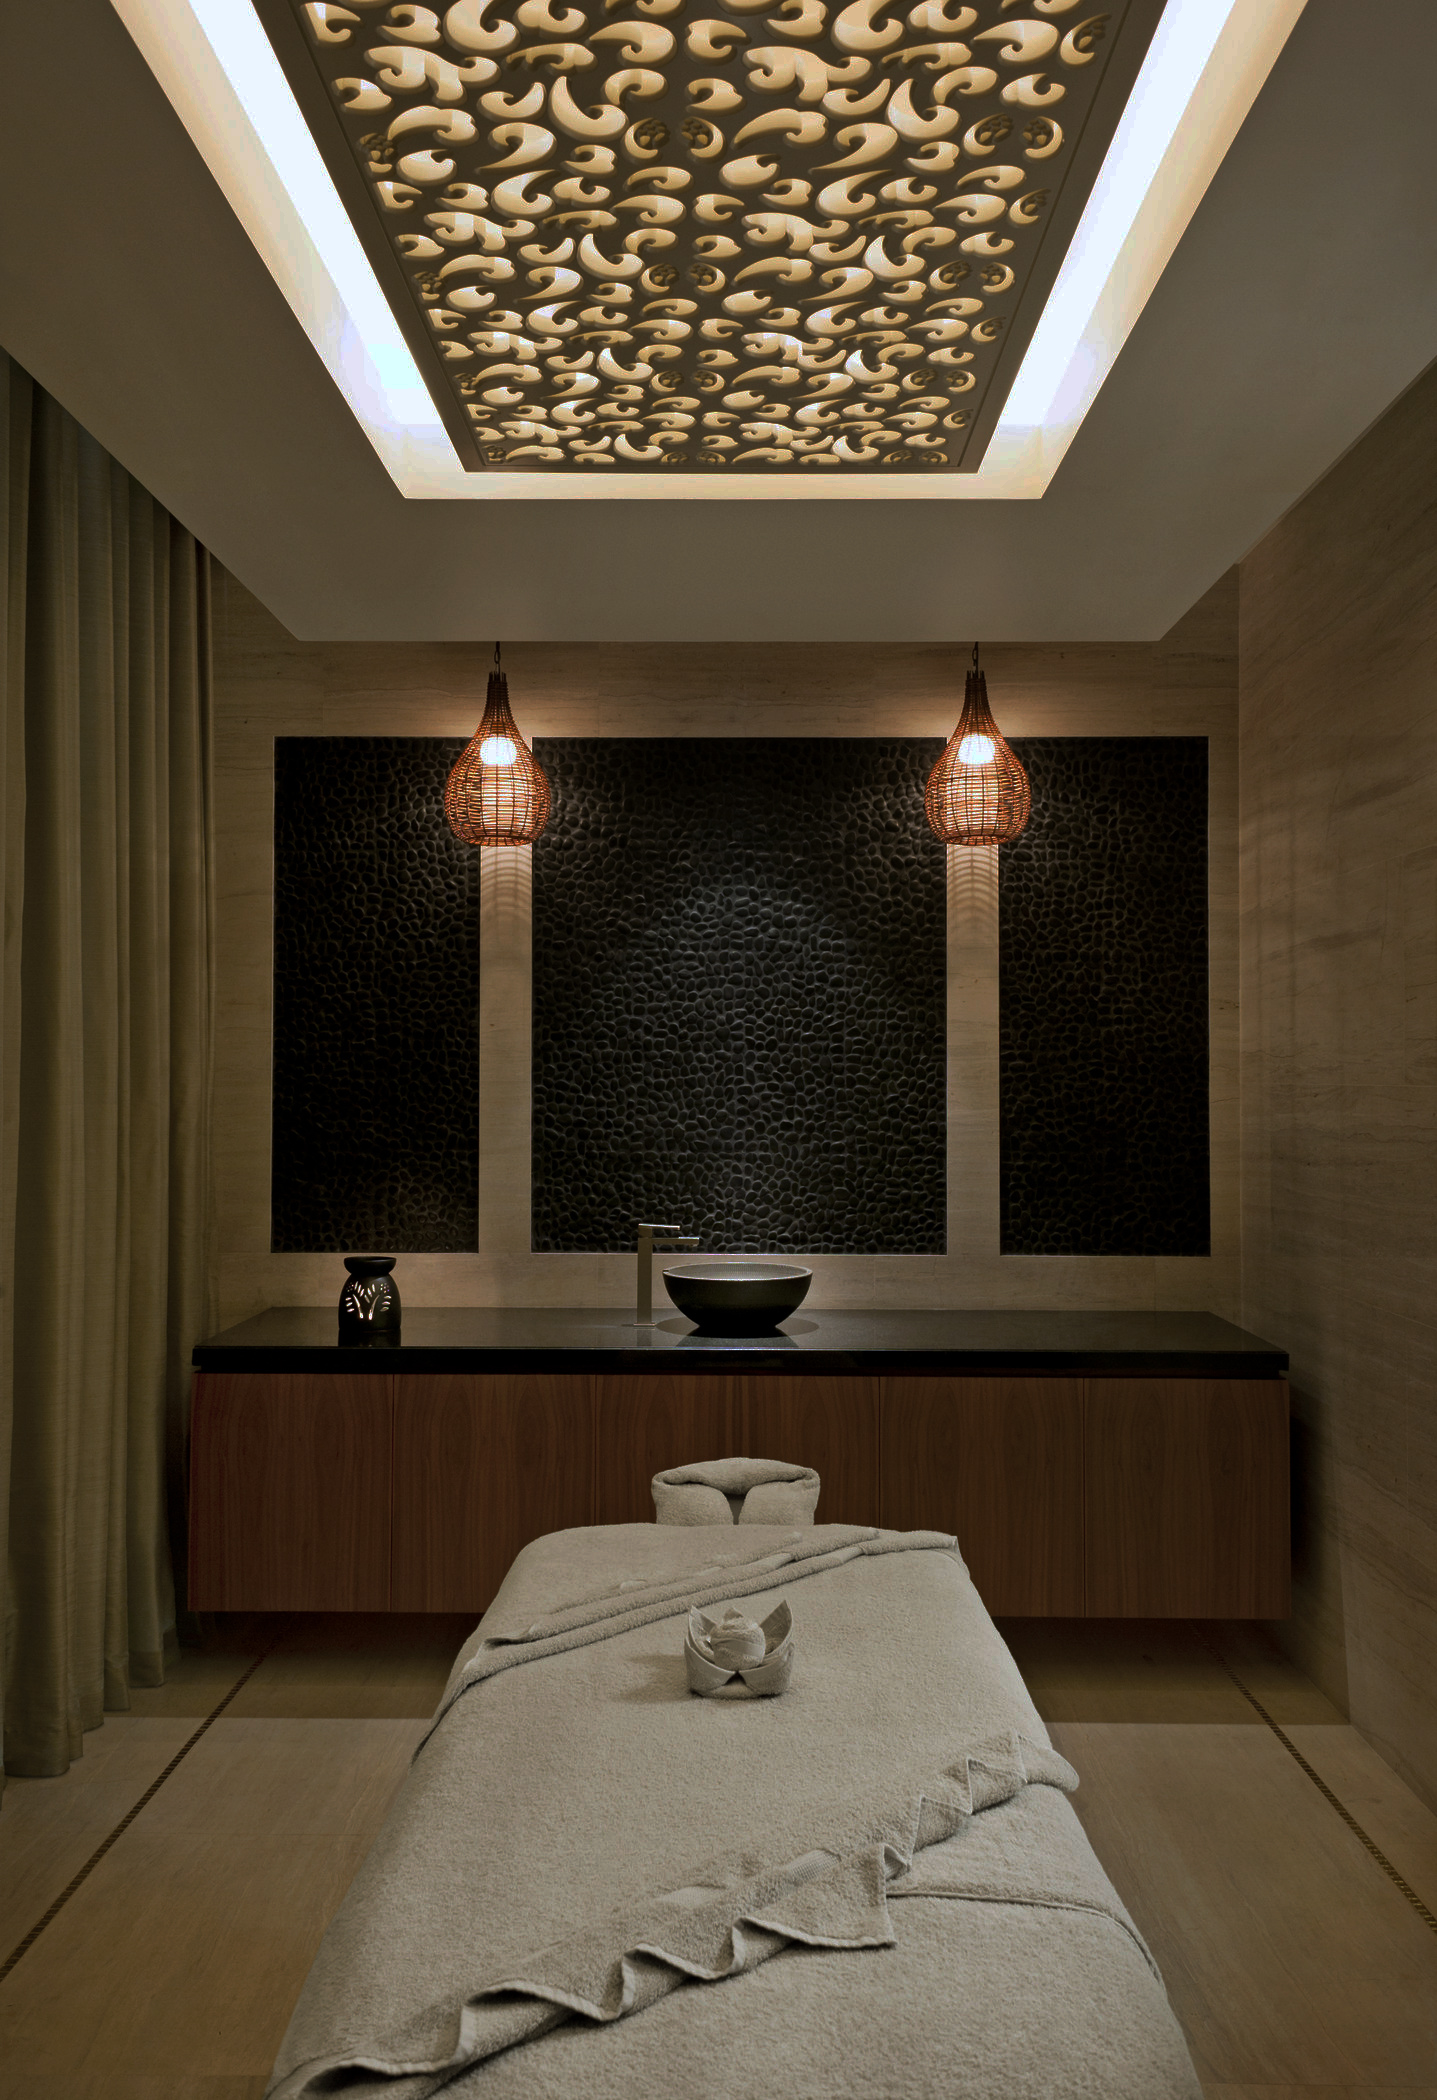 Iridium Spa - Treatment Room.jpg